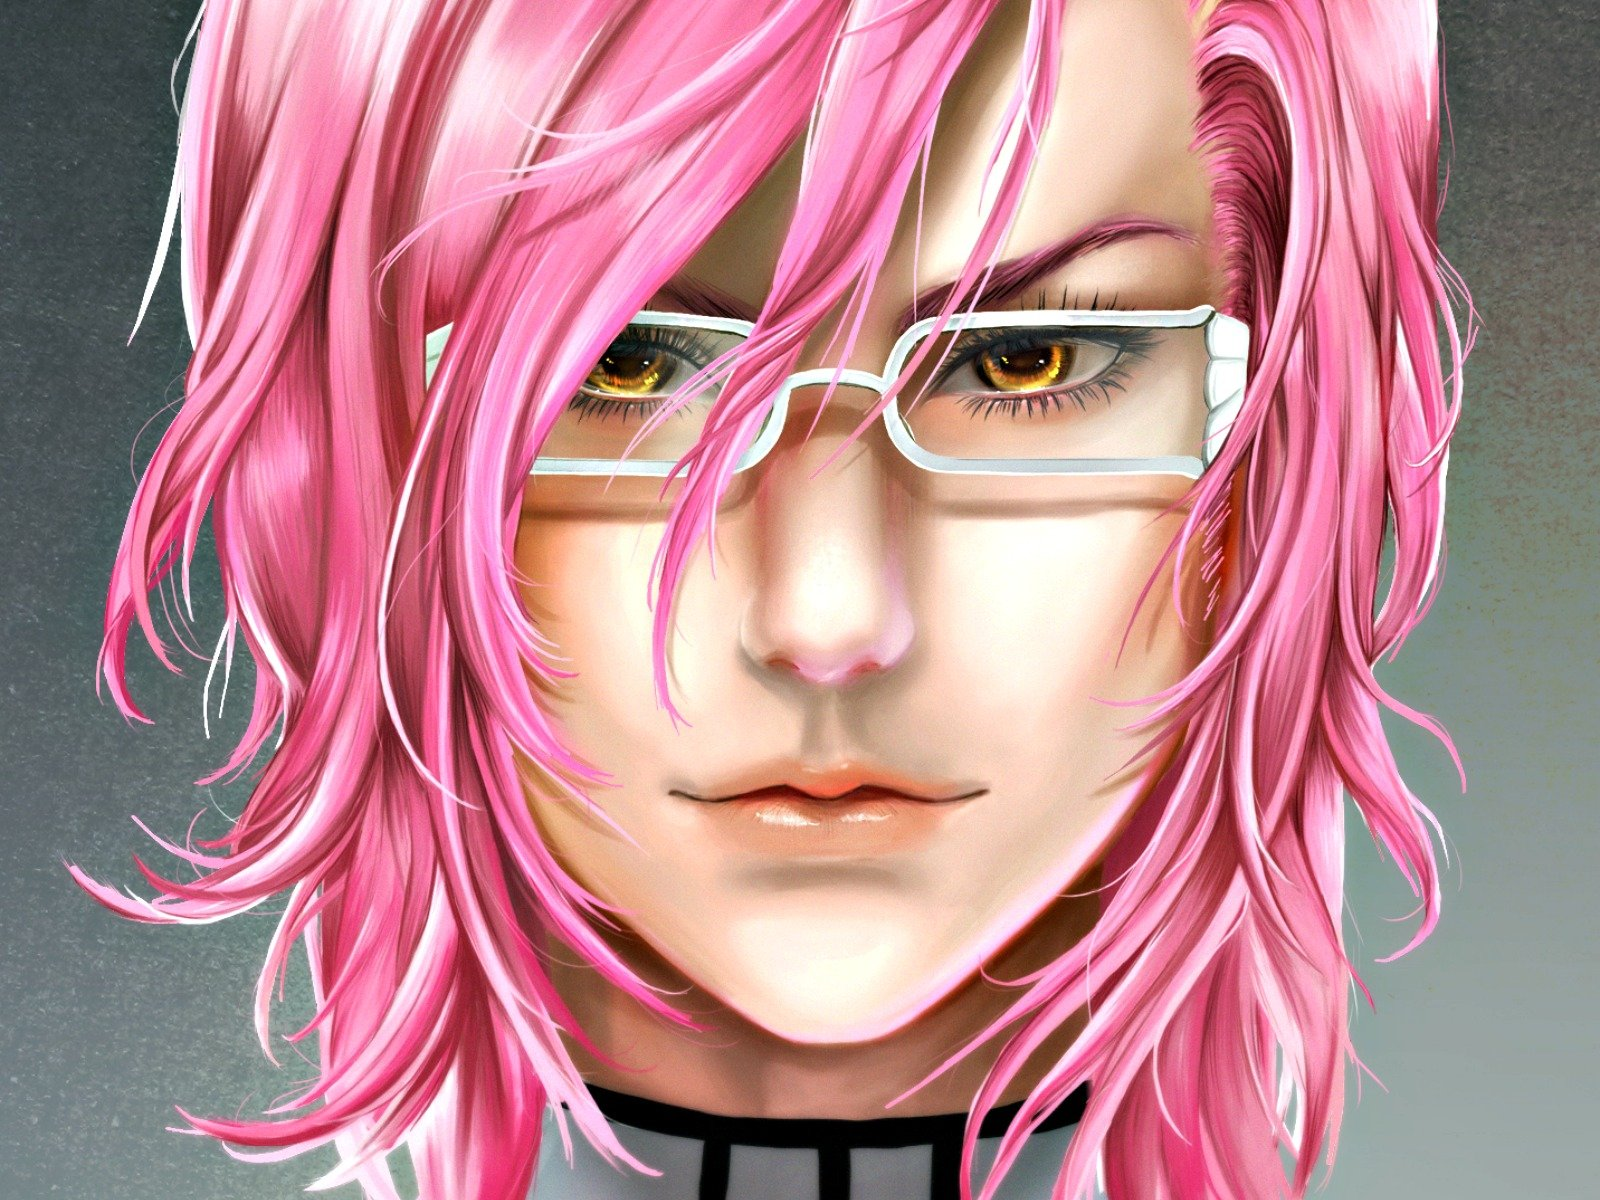 Anime Characters Pink Hair : Anime character bleach pink hair wallpaper